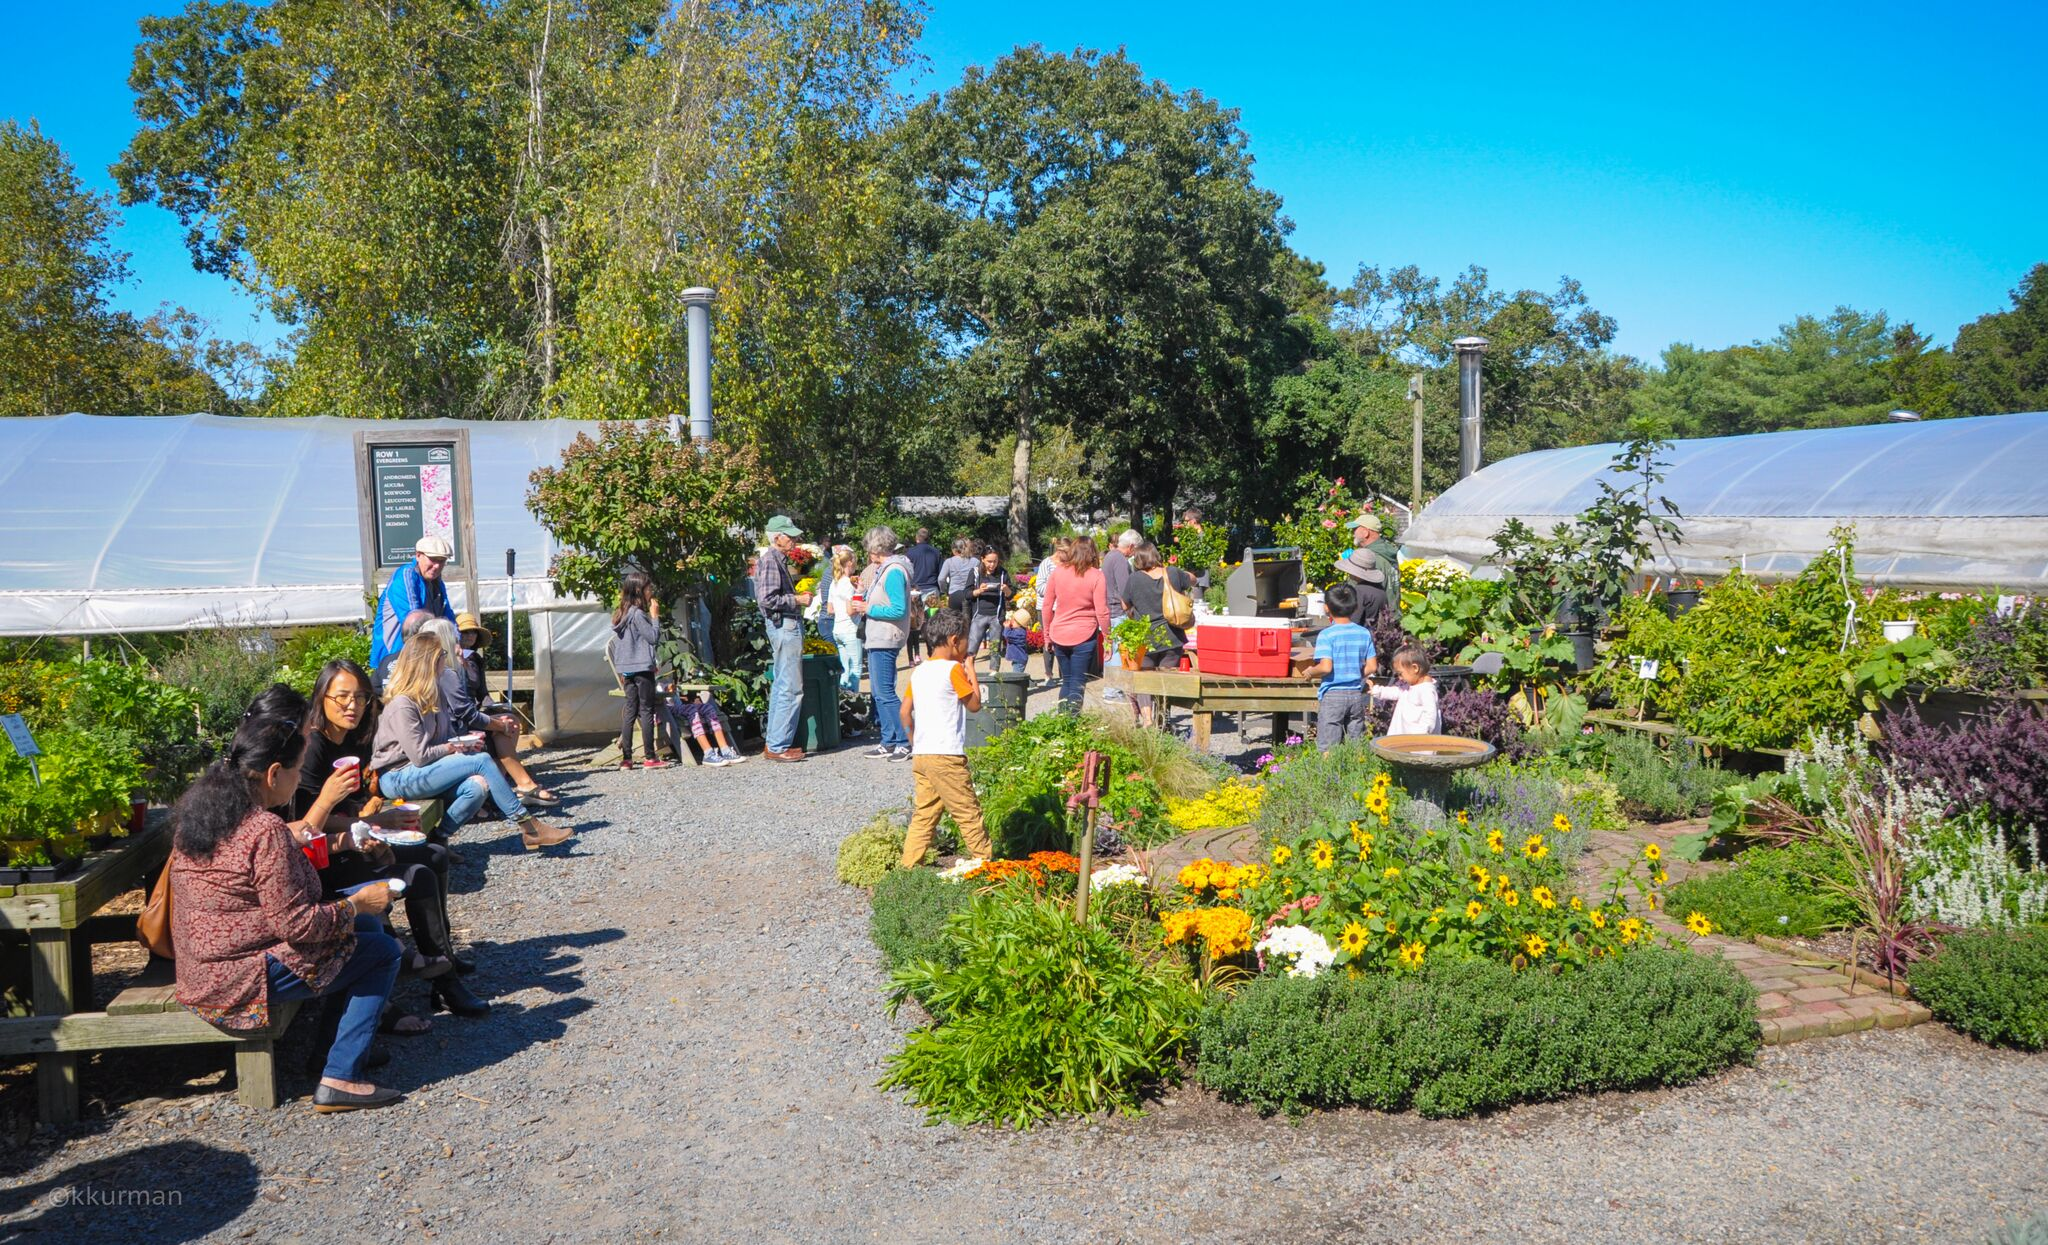 Dining al fresco in the Herb display garden. A well attended event with perfect weather!